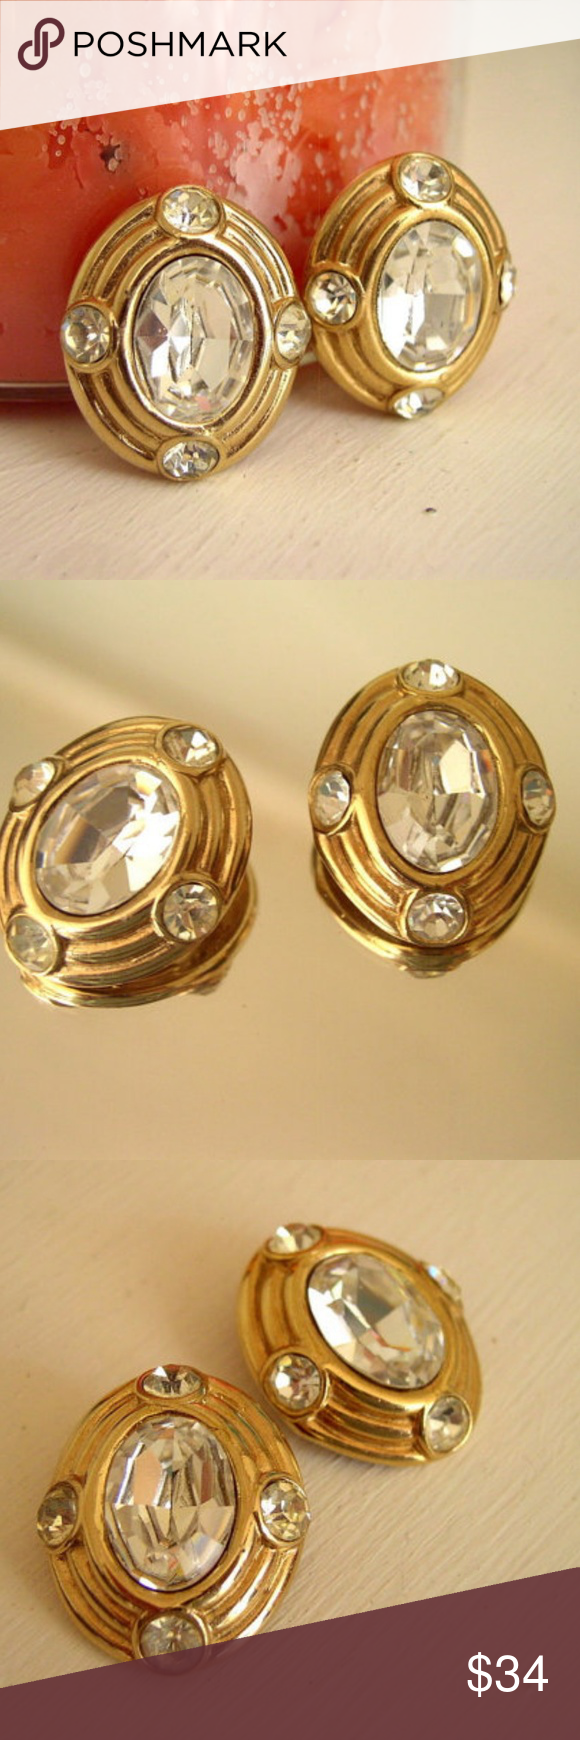 Silver and Gold Oval Cabochon Stud Earrings Costume Jewelry Two Tone  Statement Earrings Chunky Stud Earrings Vintage Jewelry